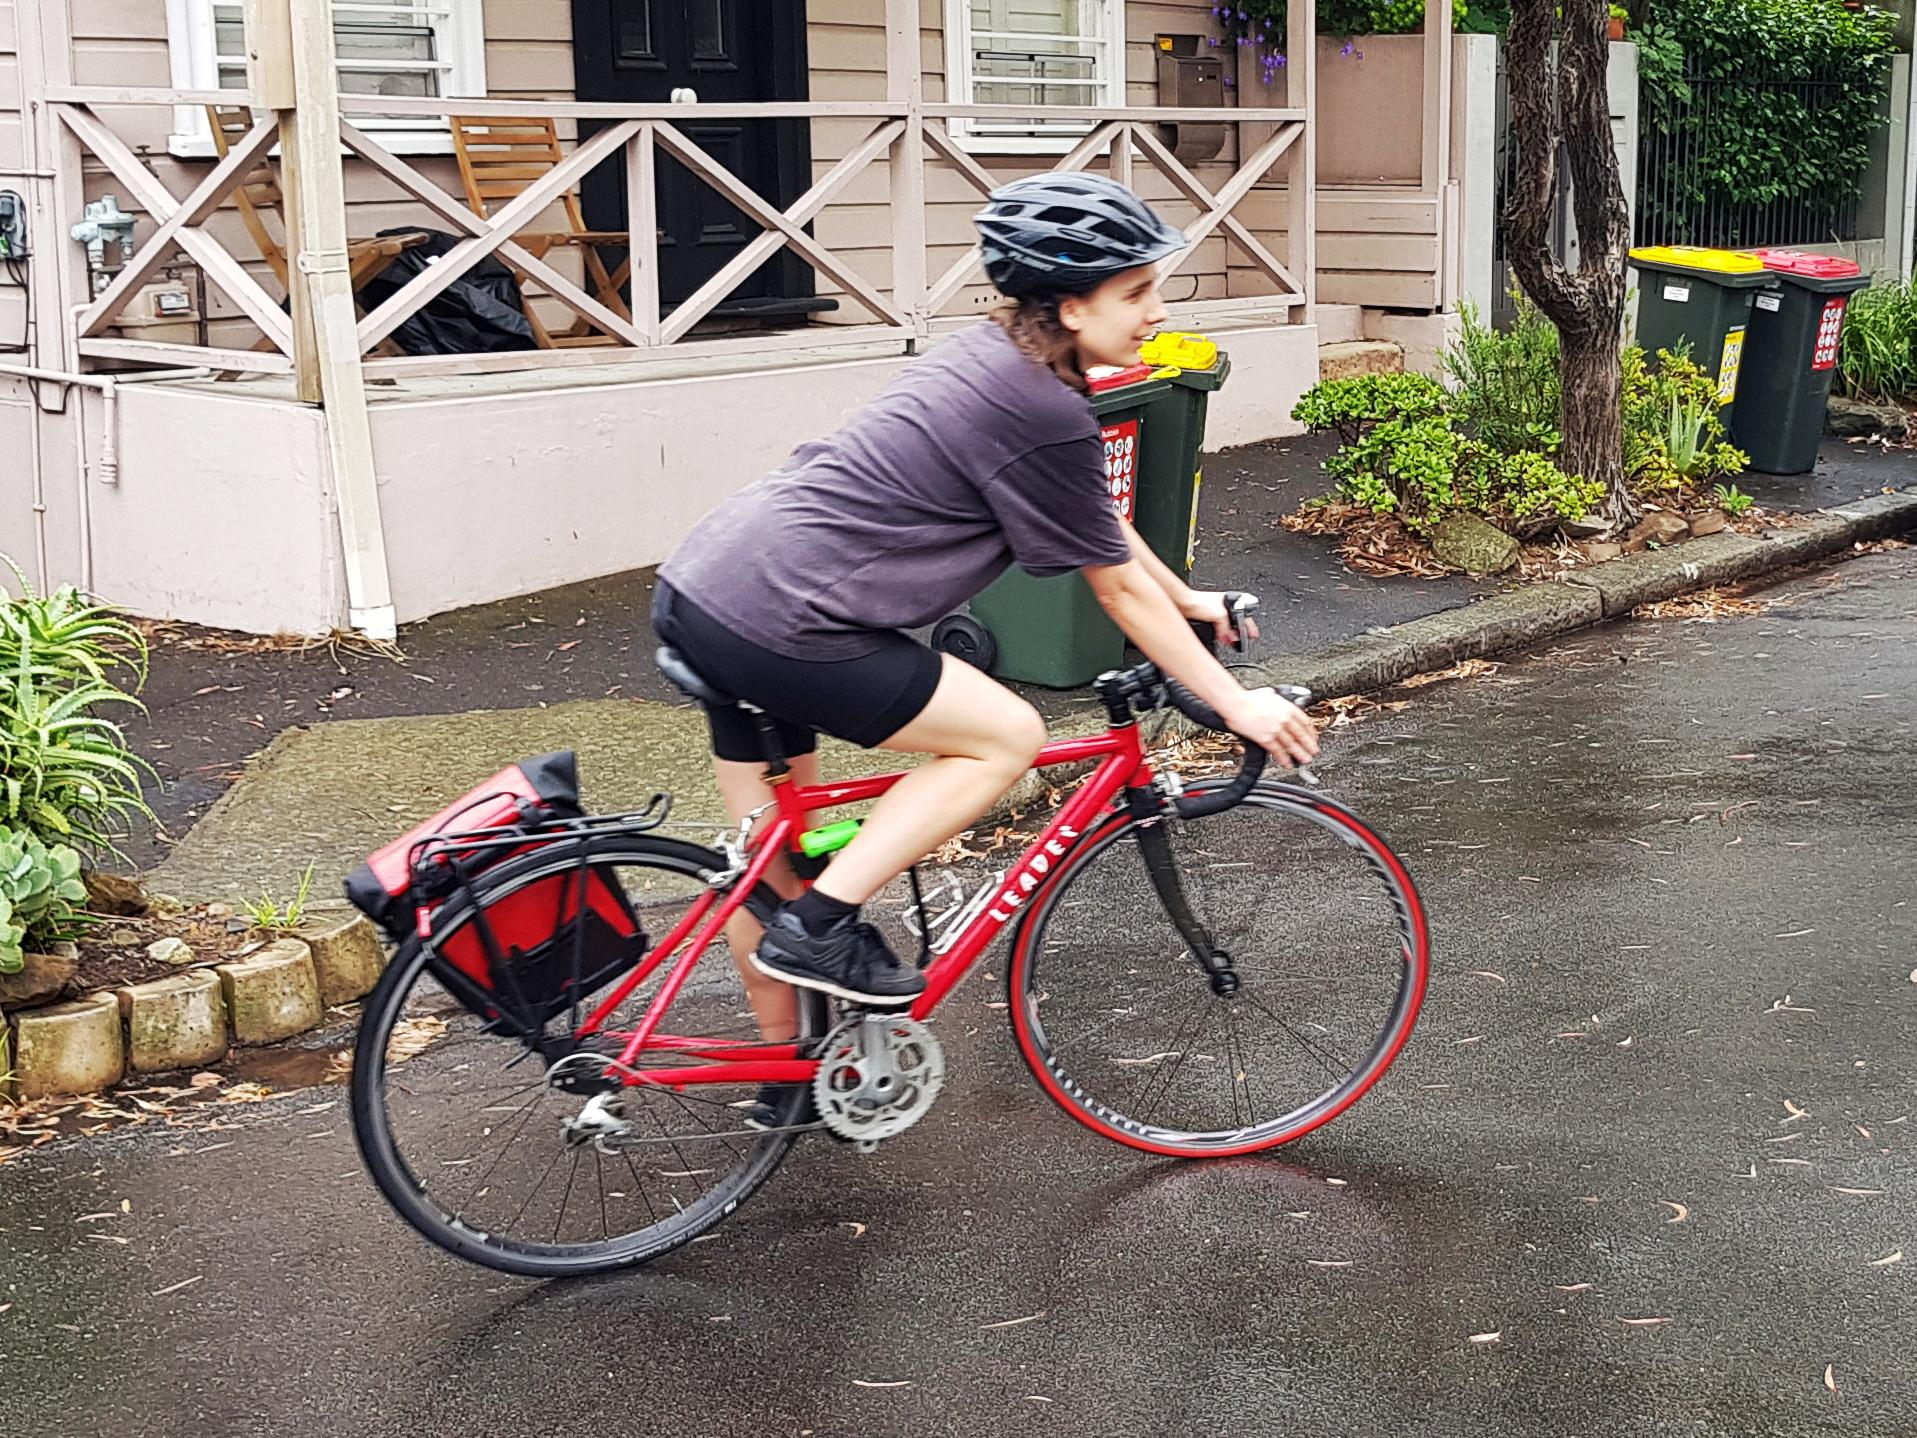 Coronavirus: Books for self-isolation delivered by bicycle from Sydney shop